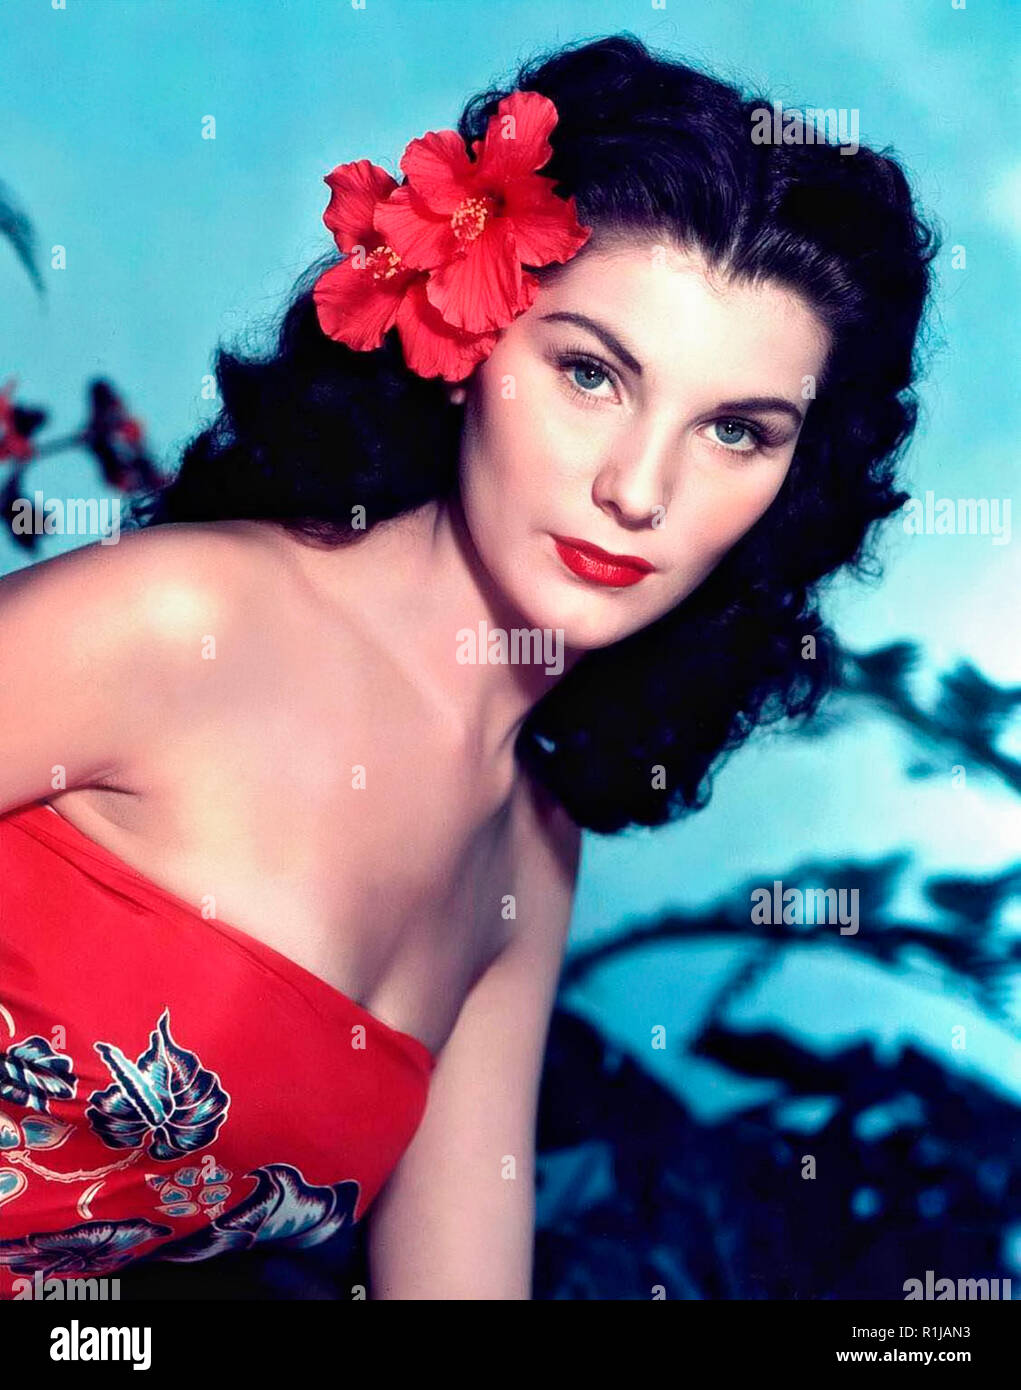 Debra Paget (born Debralee Griffin; August 19, 1933) is an American actress and entertainer. She is perhaps best known for her performances in Cecil B. DeMille's epic The Ten Commandments (1956) and in Love Me Tender (1956) (the film debut of Elvis Presley), and for the risque (for the time) snake dance scene in The Indian Tomb (1959) Credit: Hollywood Photo Archive / MediaPunch - Stock Image